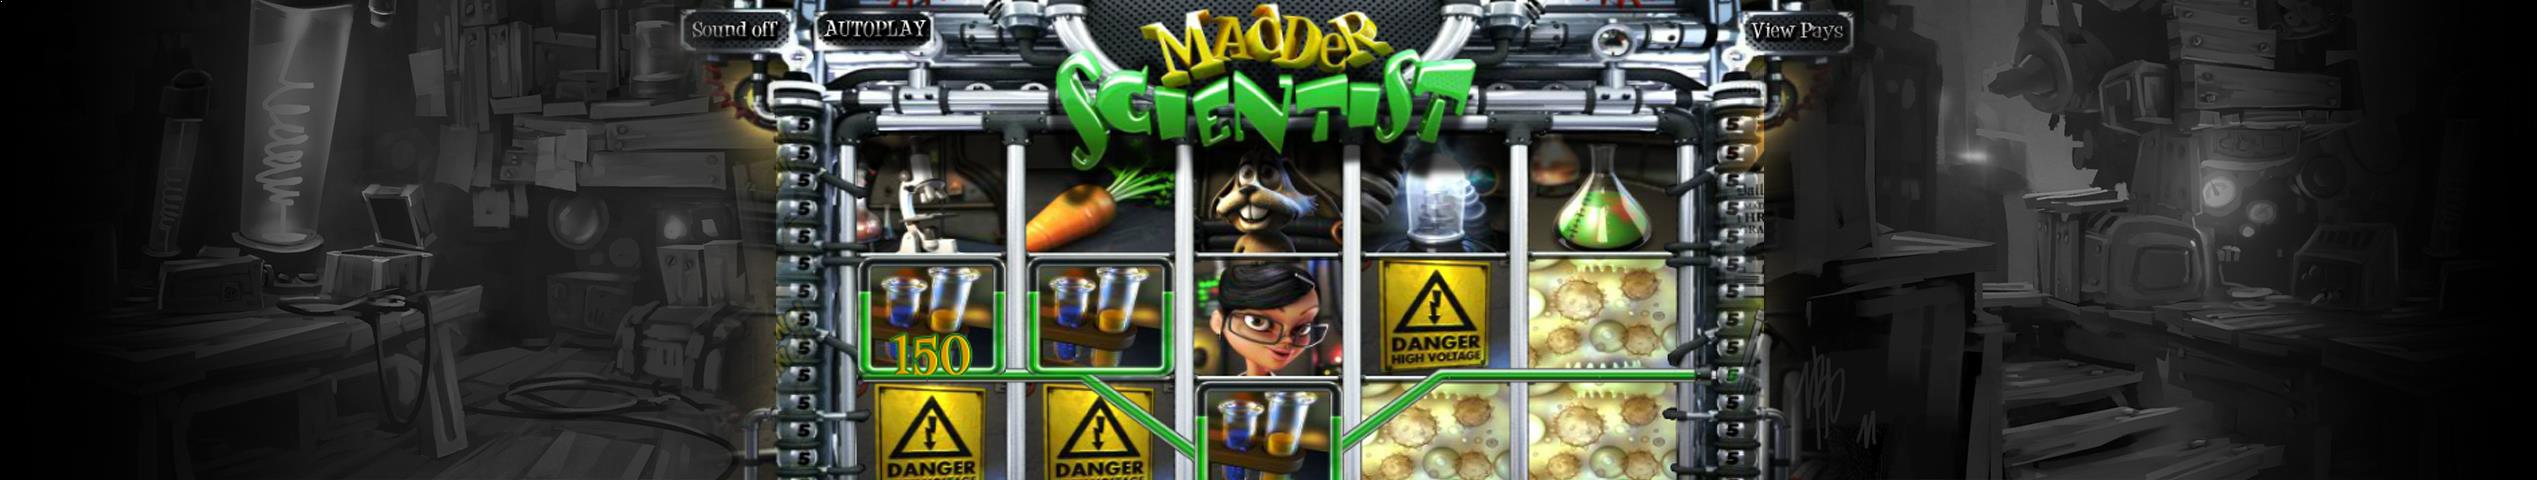 Madder Scientist betsoft jocuri slot slider